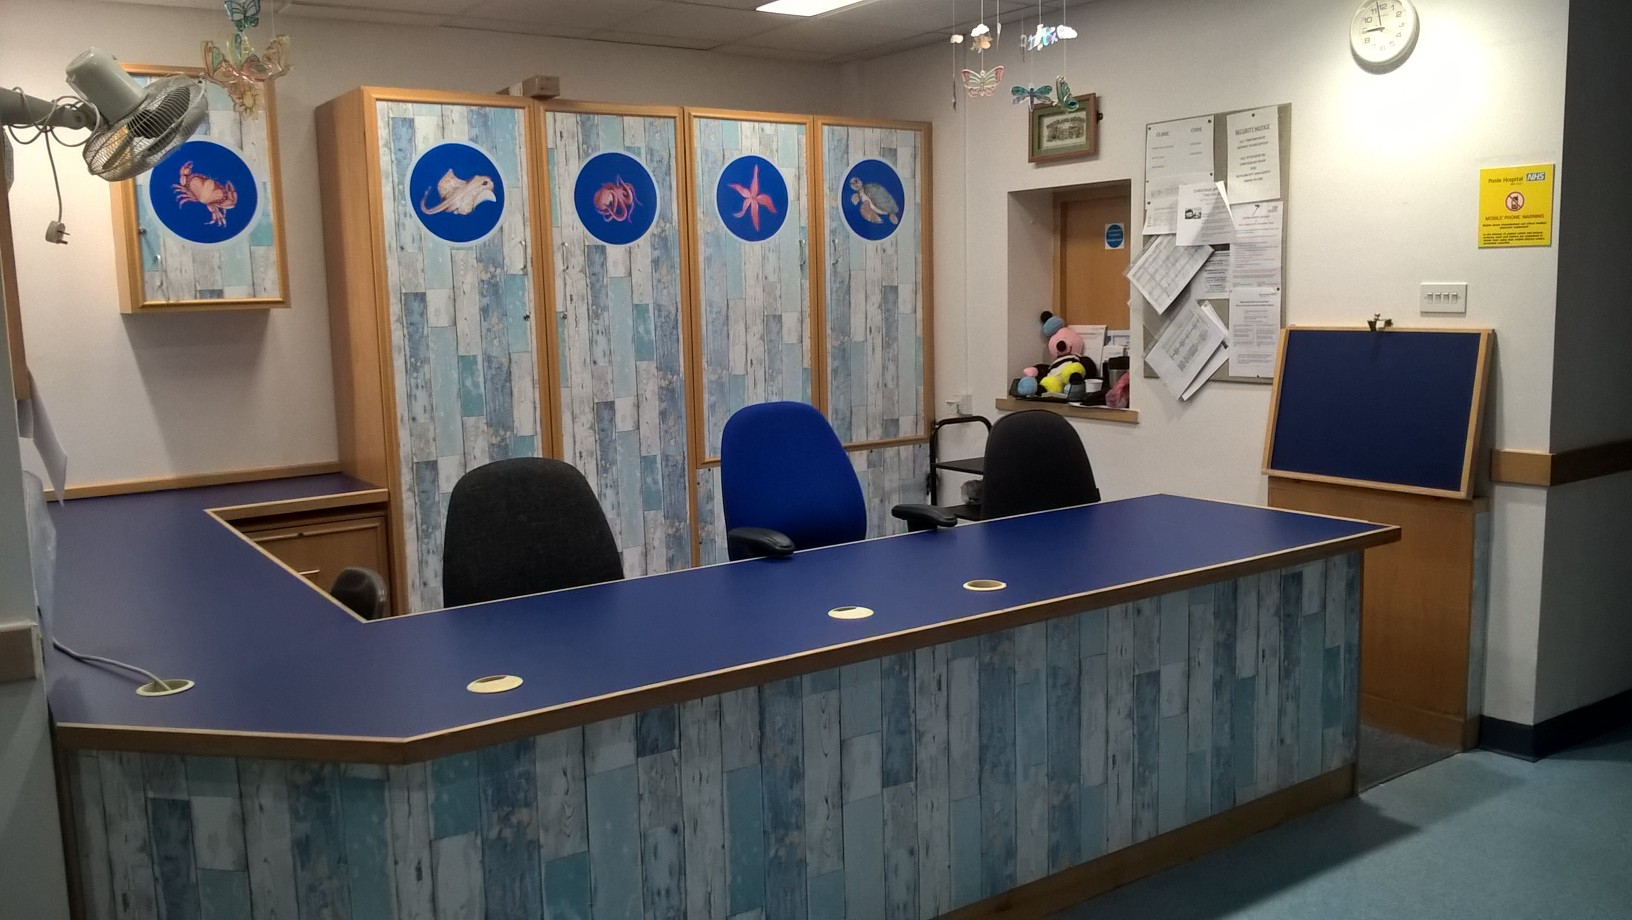 Reception Desk - Refurbishment